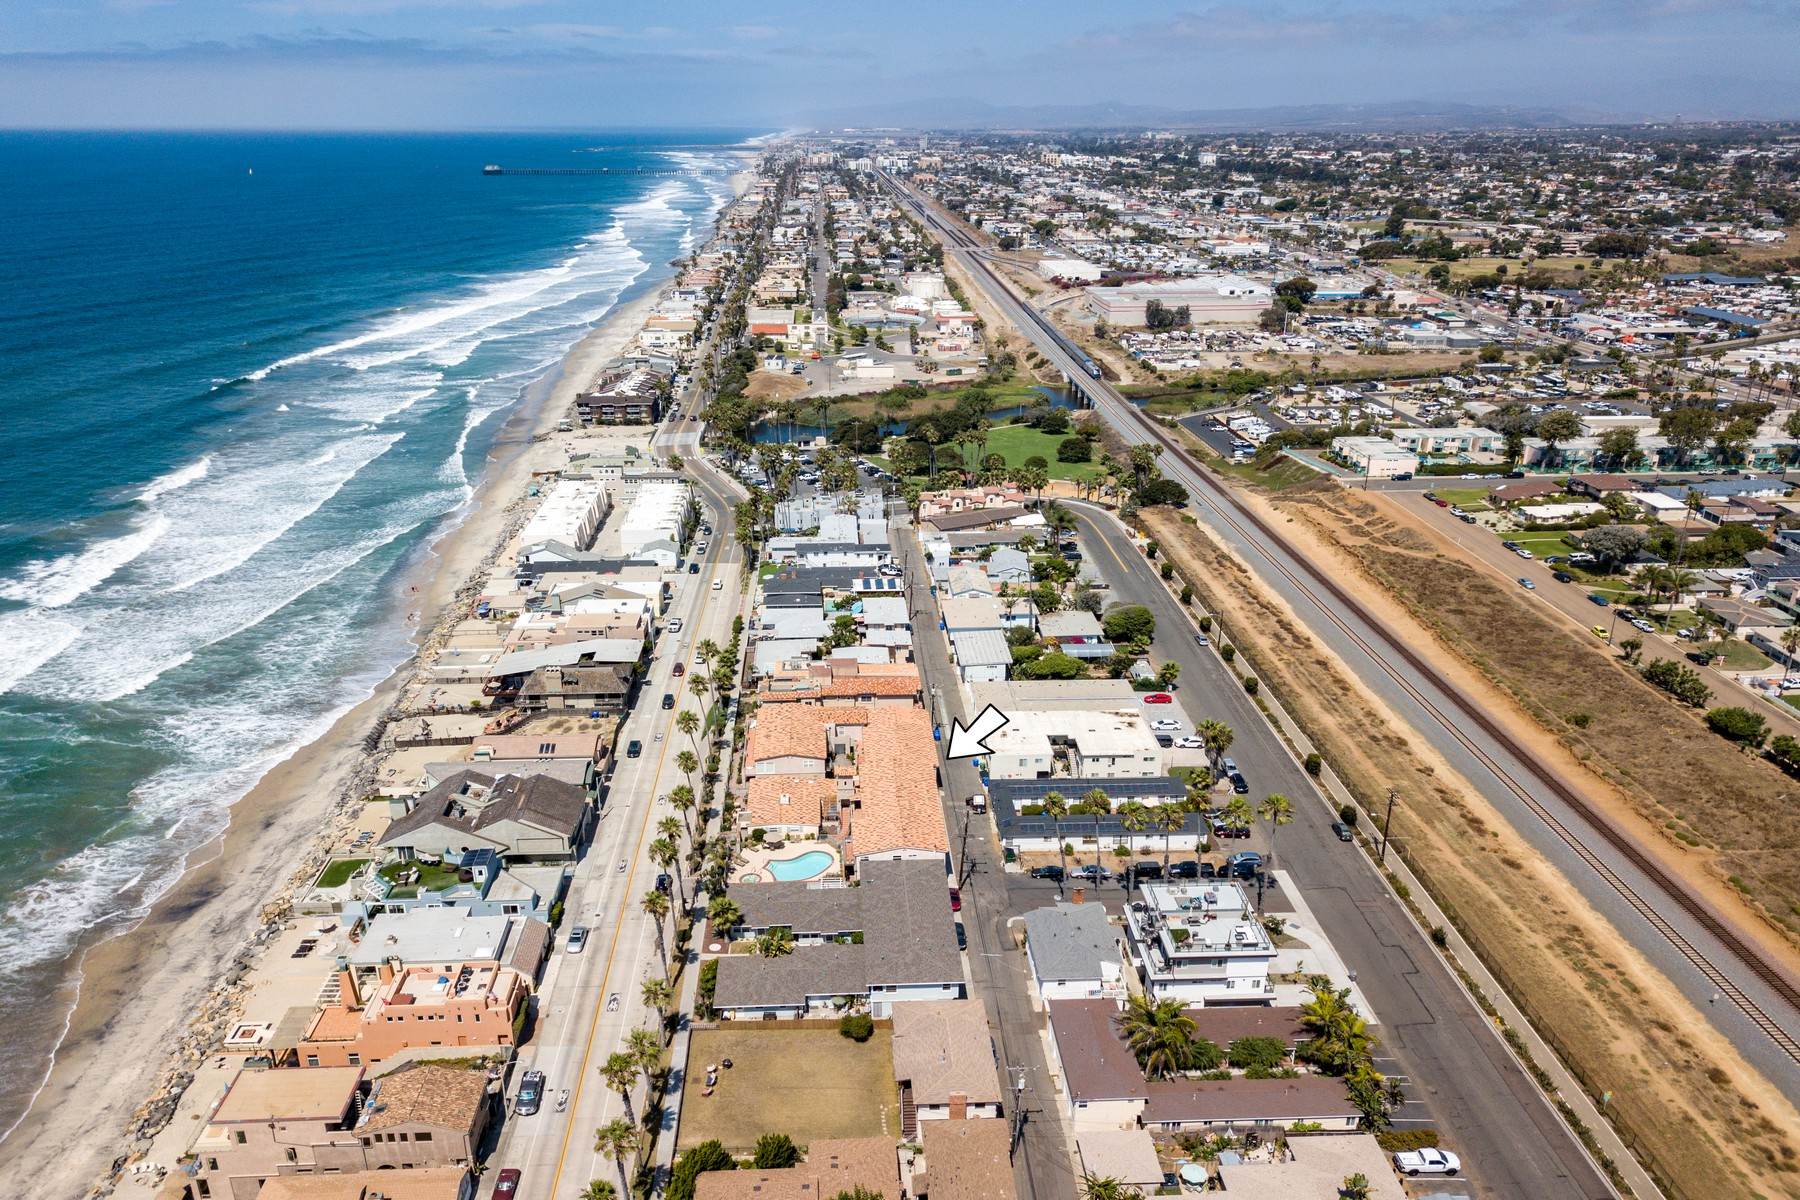 Single Family Homes for Sale at 1640 SPacific Street, Unit 10 1640 S Pacific Street, Unit 10 Oceanside, California 92054 United States